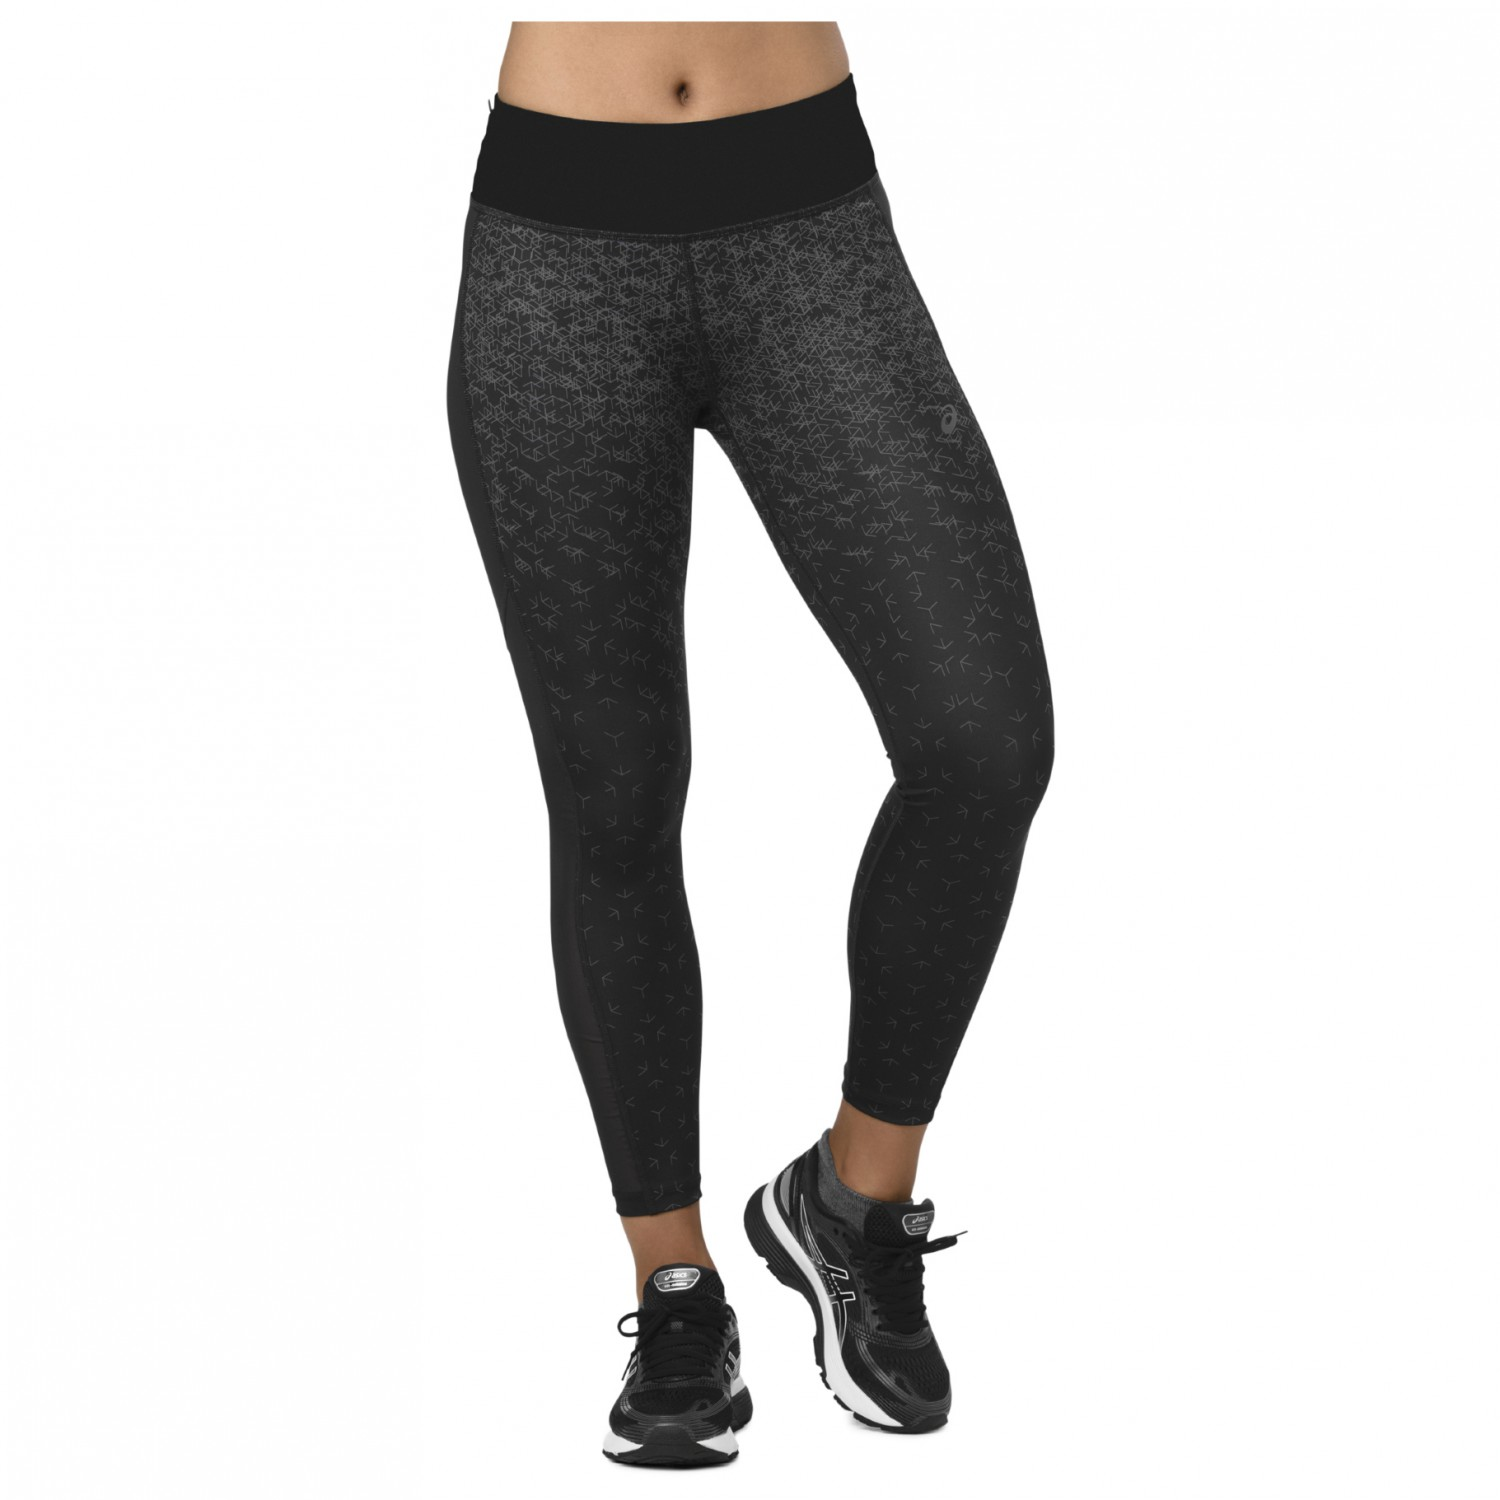 842c28df51 Asics - Women's Crop Tight Print - Running trousers - AOP Hex Fade  Performance Black | XS